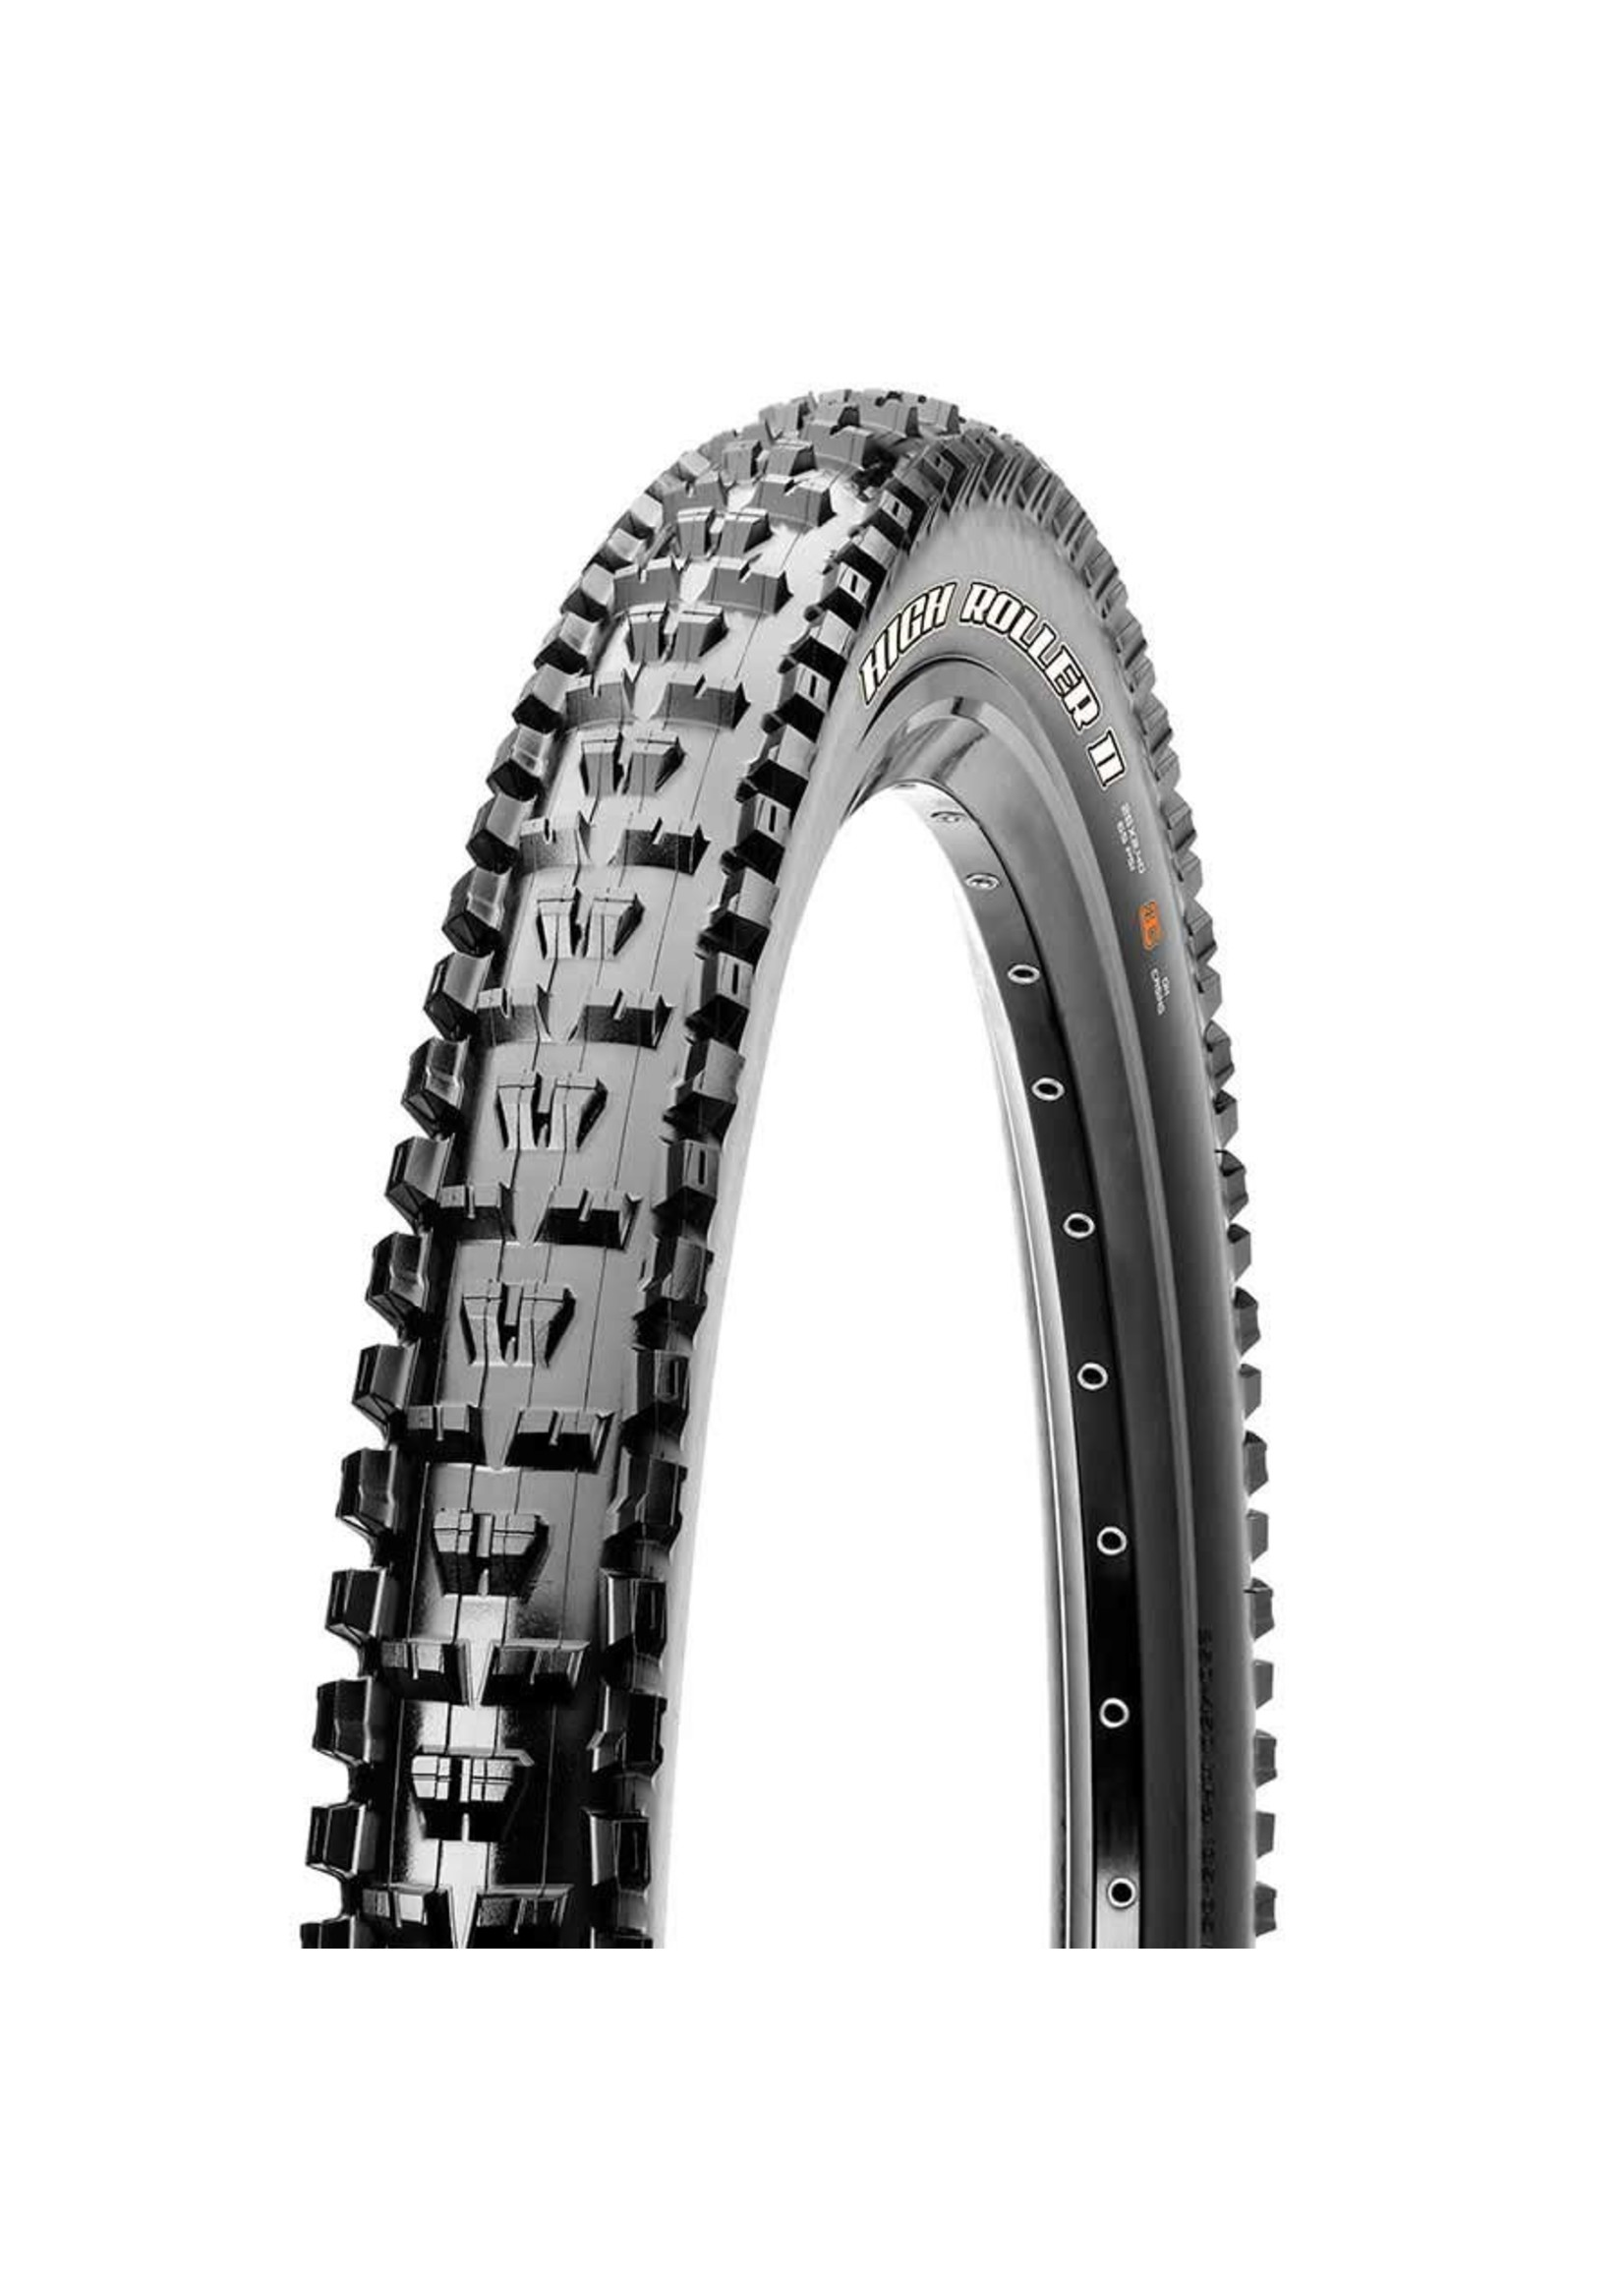 Maxxis Maxxis, High R'ller II, Tire, 29''x2.50, F'lding, Tubeless Ready, 3C Maxx Terra, EX', Wide Trail, 60TPI, Black